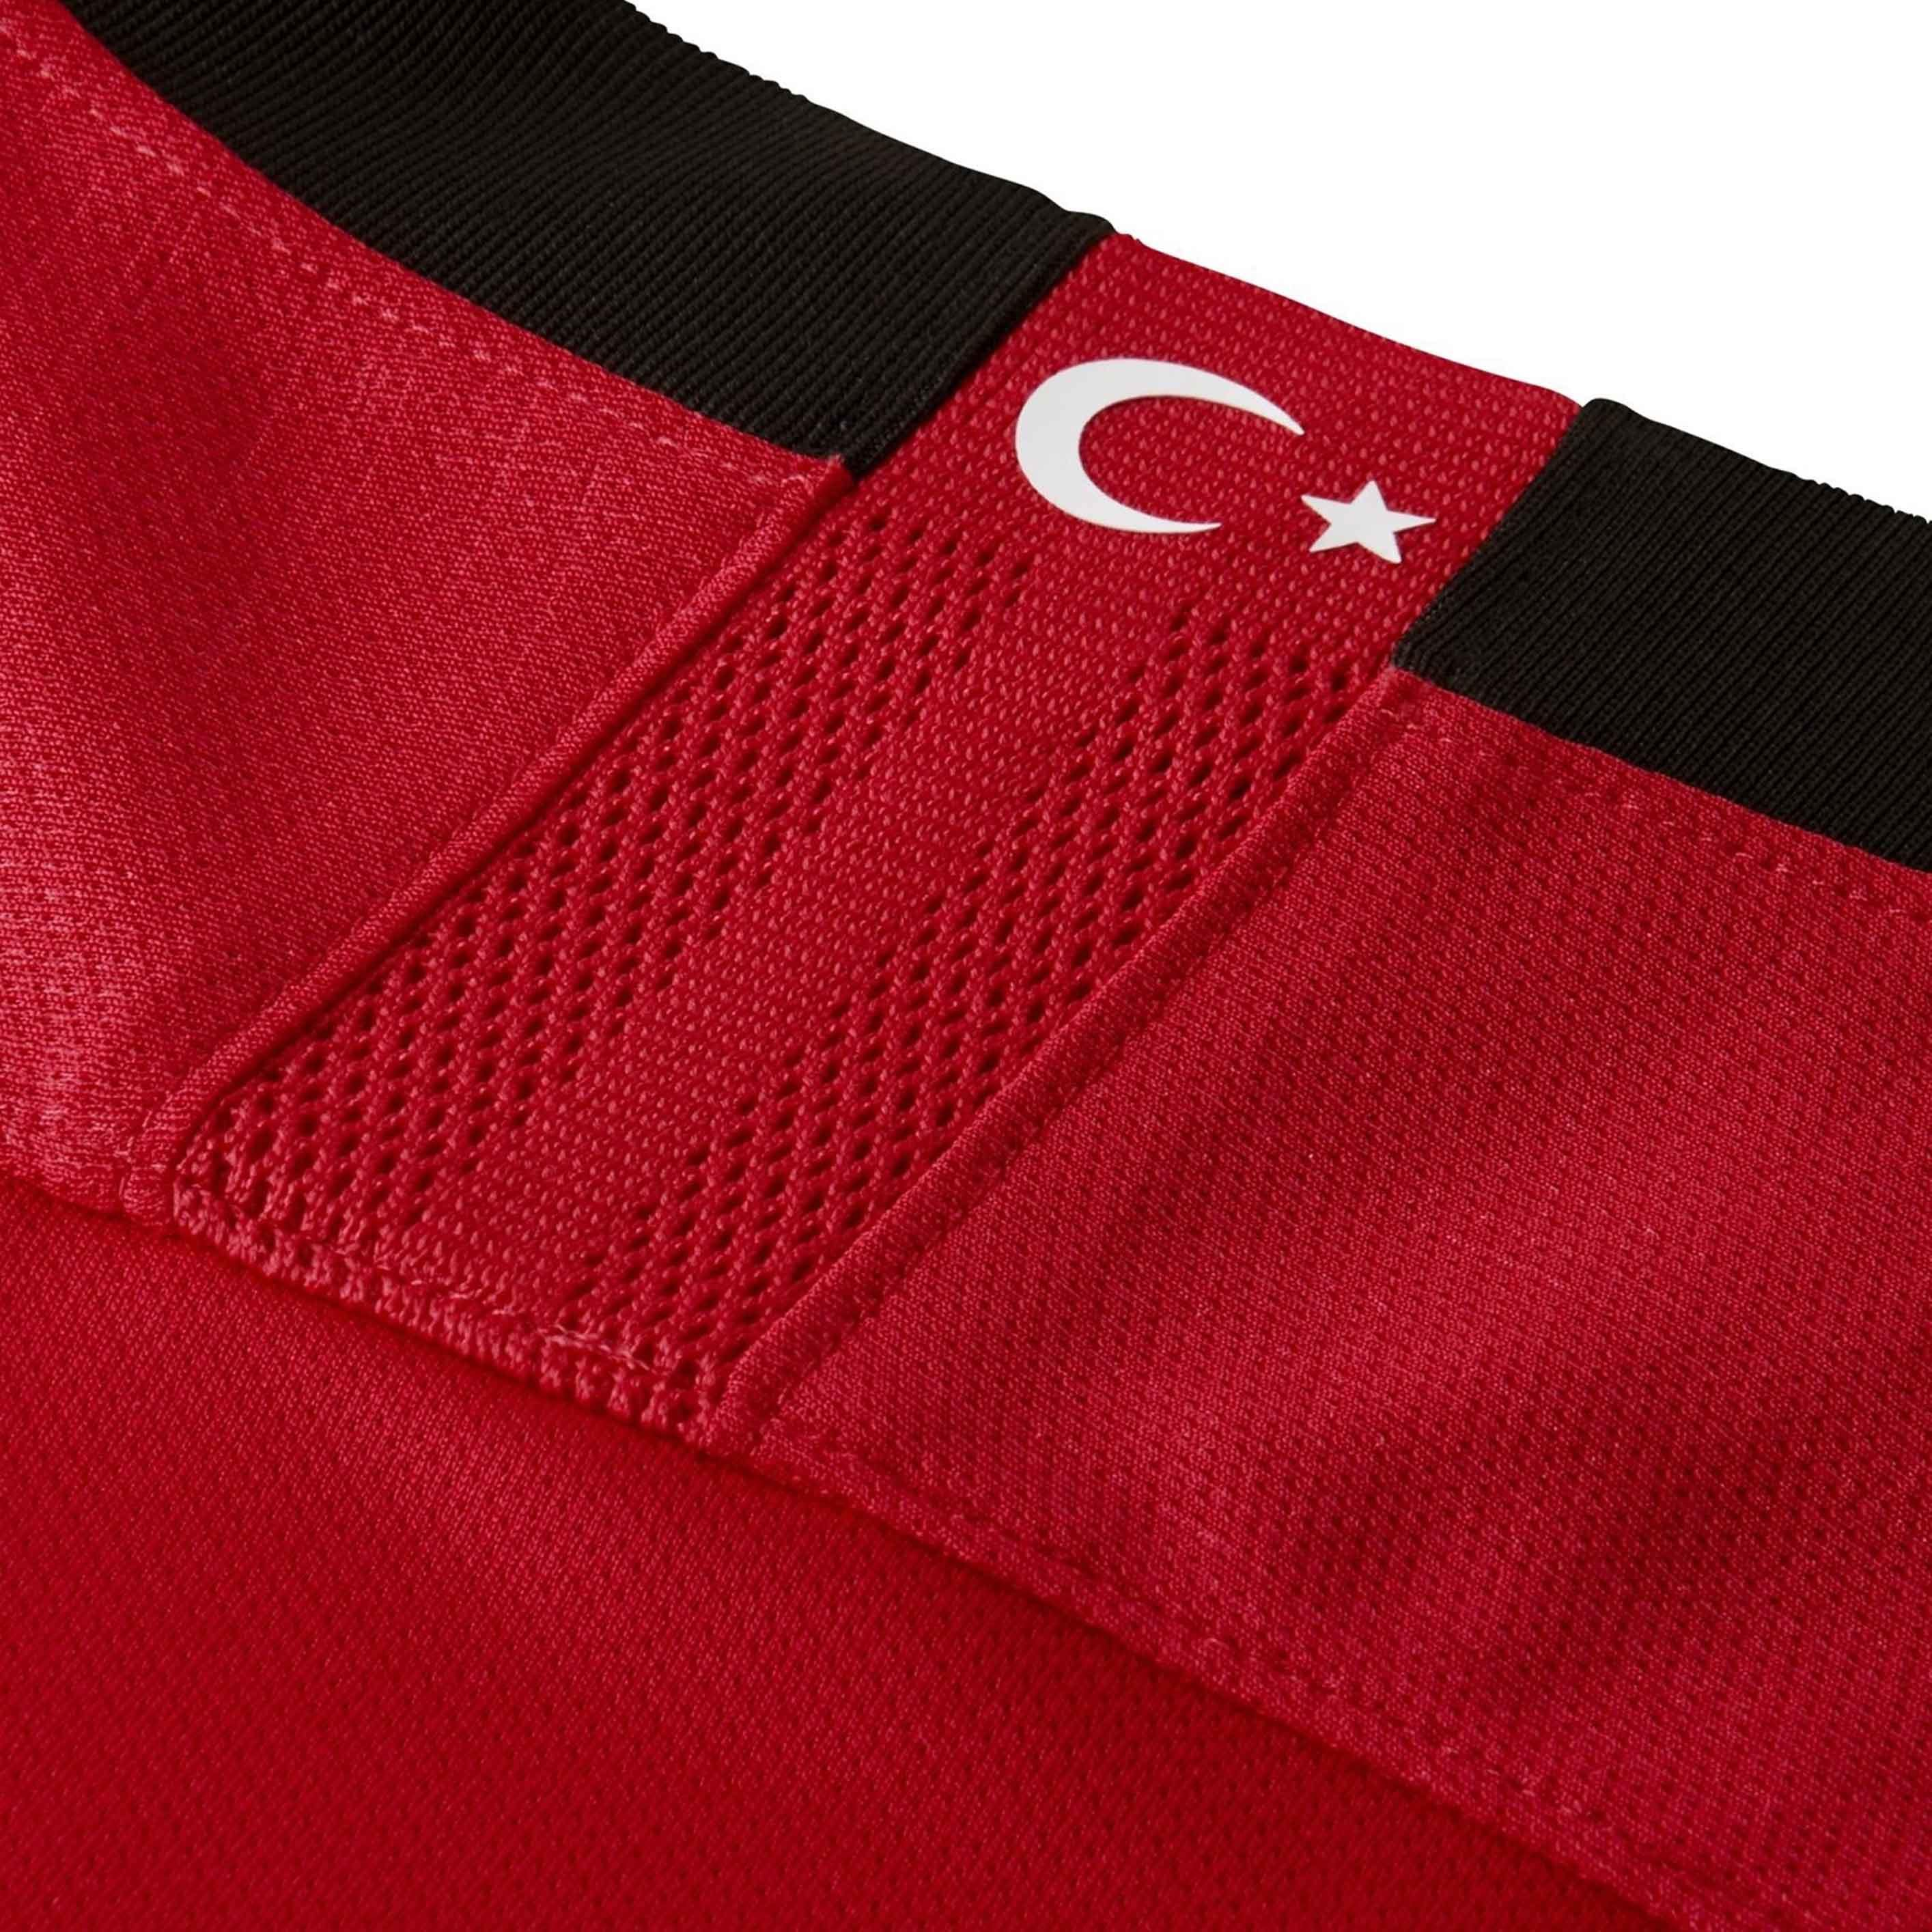 Maillot Officiel Turquie Nike Homme CAN 2020 Football Nouveau freeshipping - Foot Online